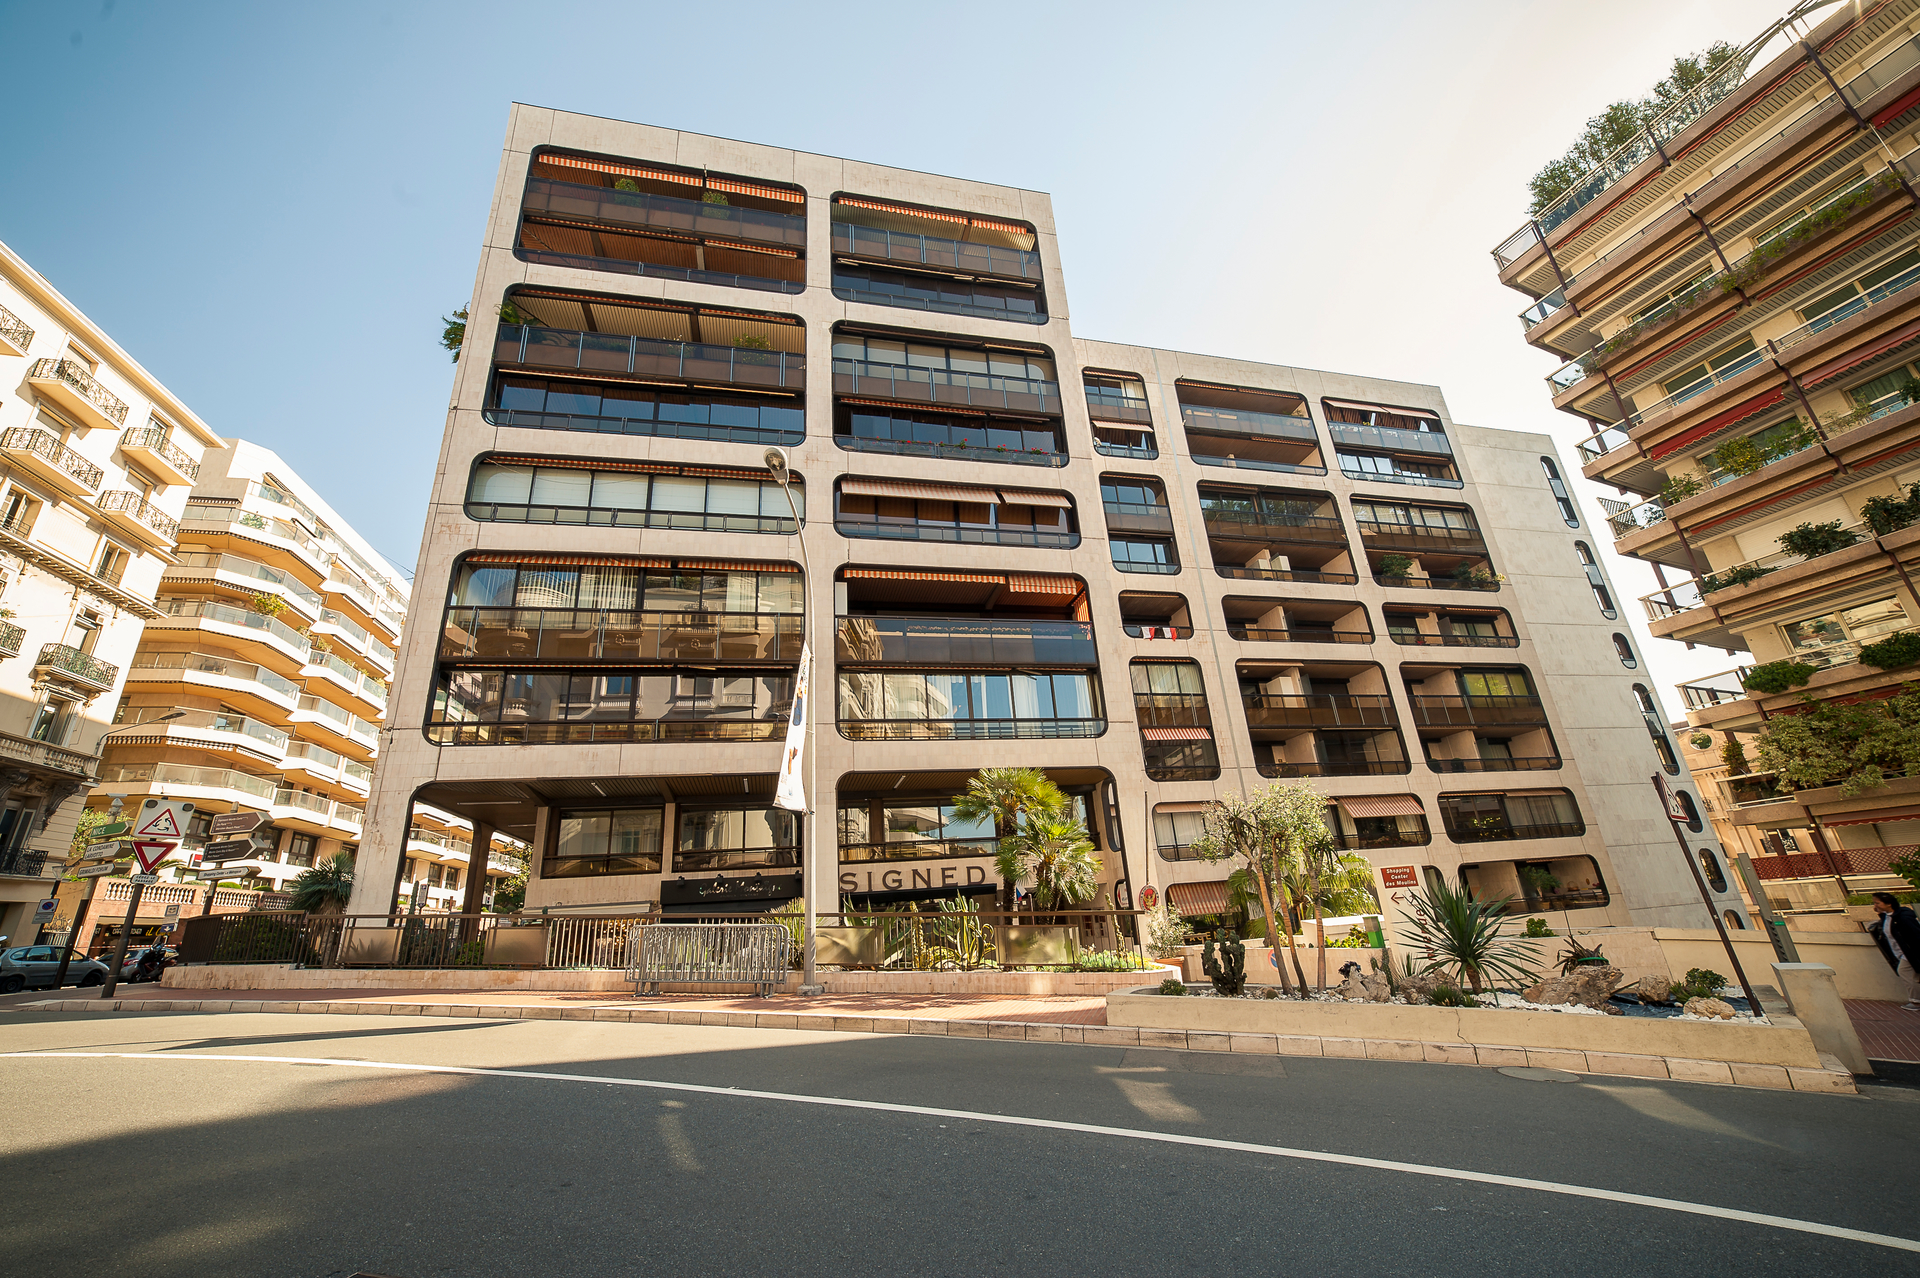 MONTAIGNE - USAGE MIXTE APPARTEMENT 3P - GRAND PARKING - Offices for sale in Monaco